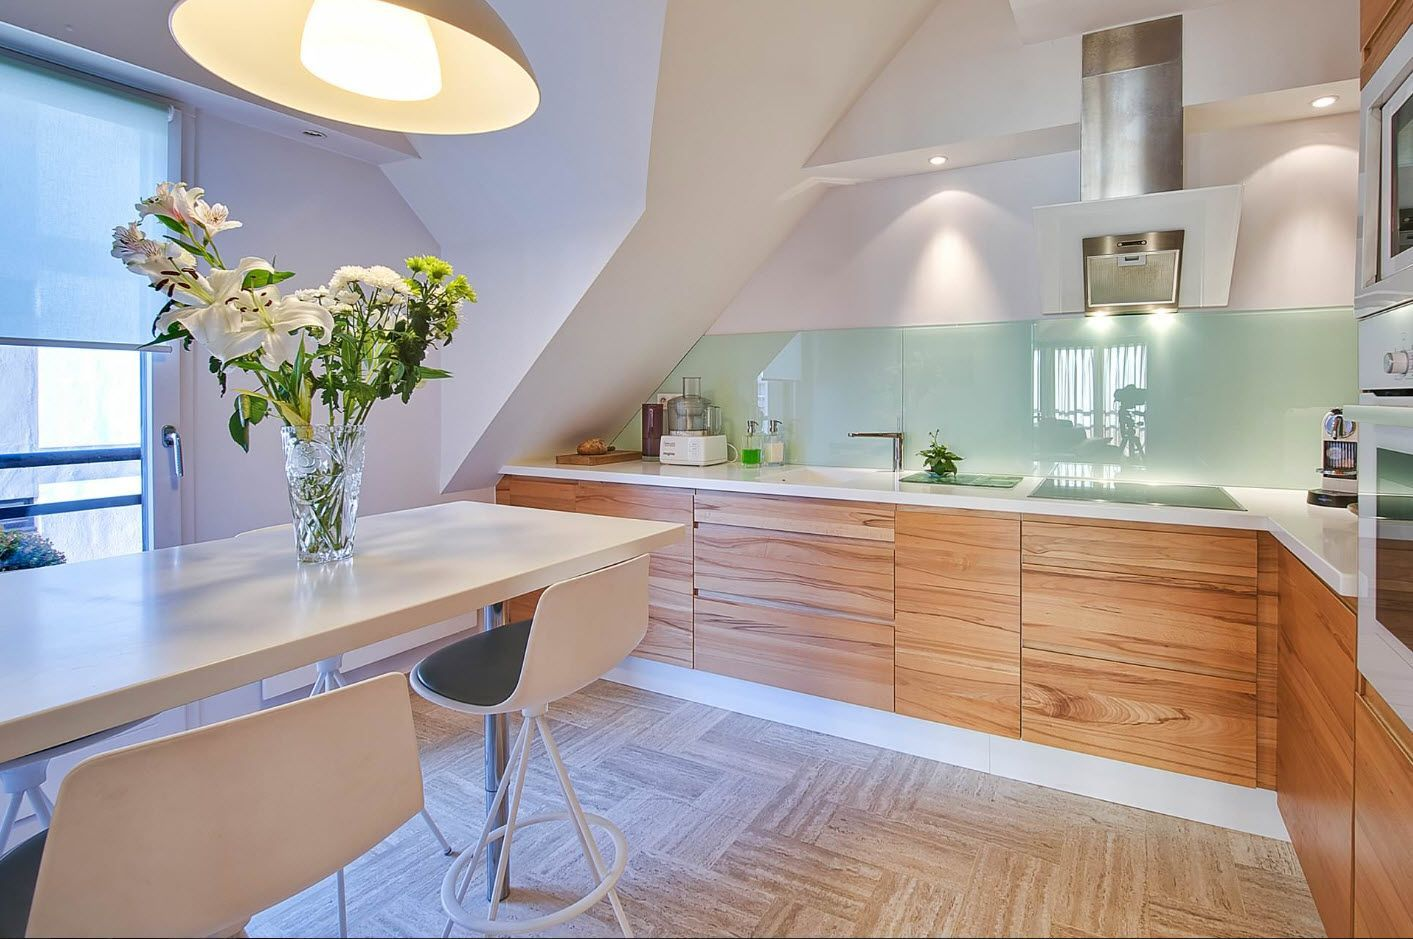 Nice angular design of the kitchen in the light tones